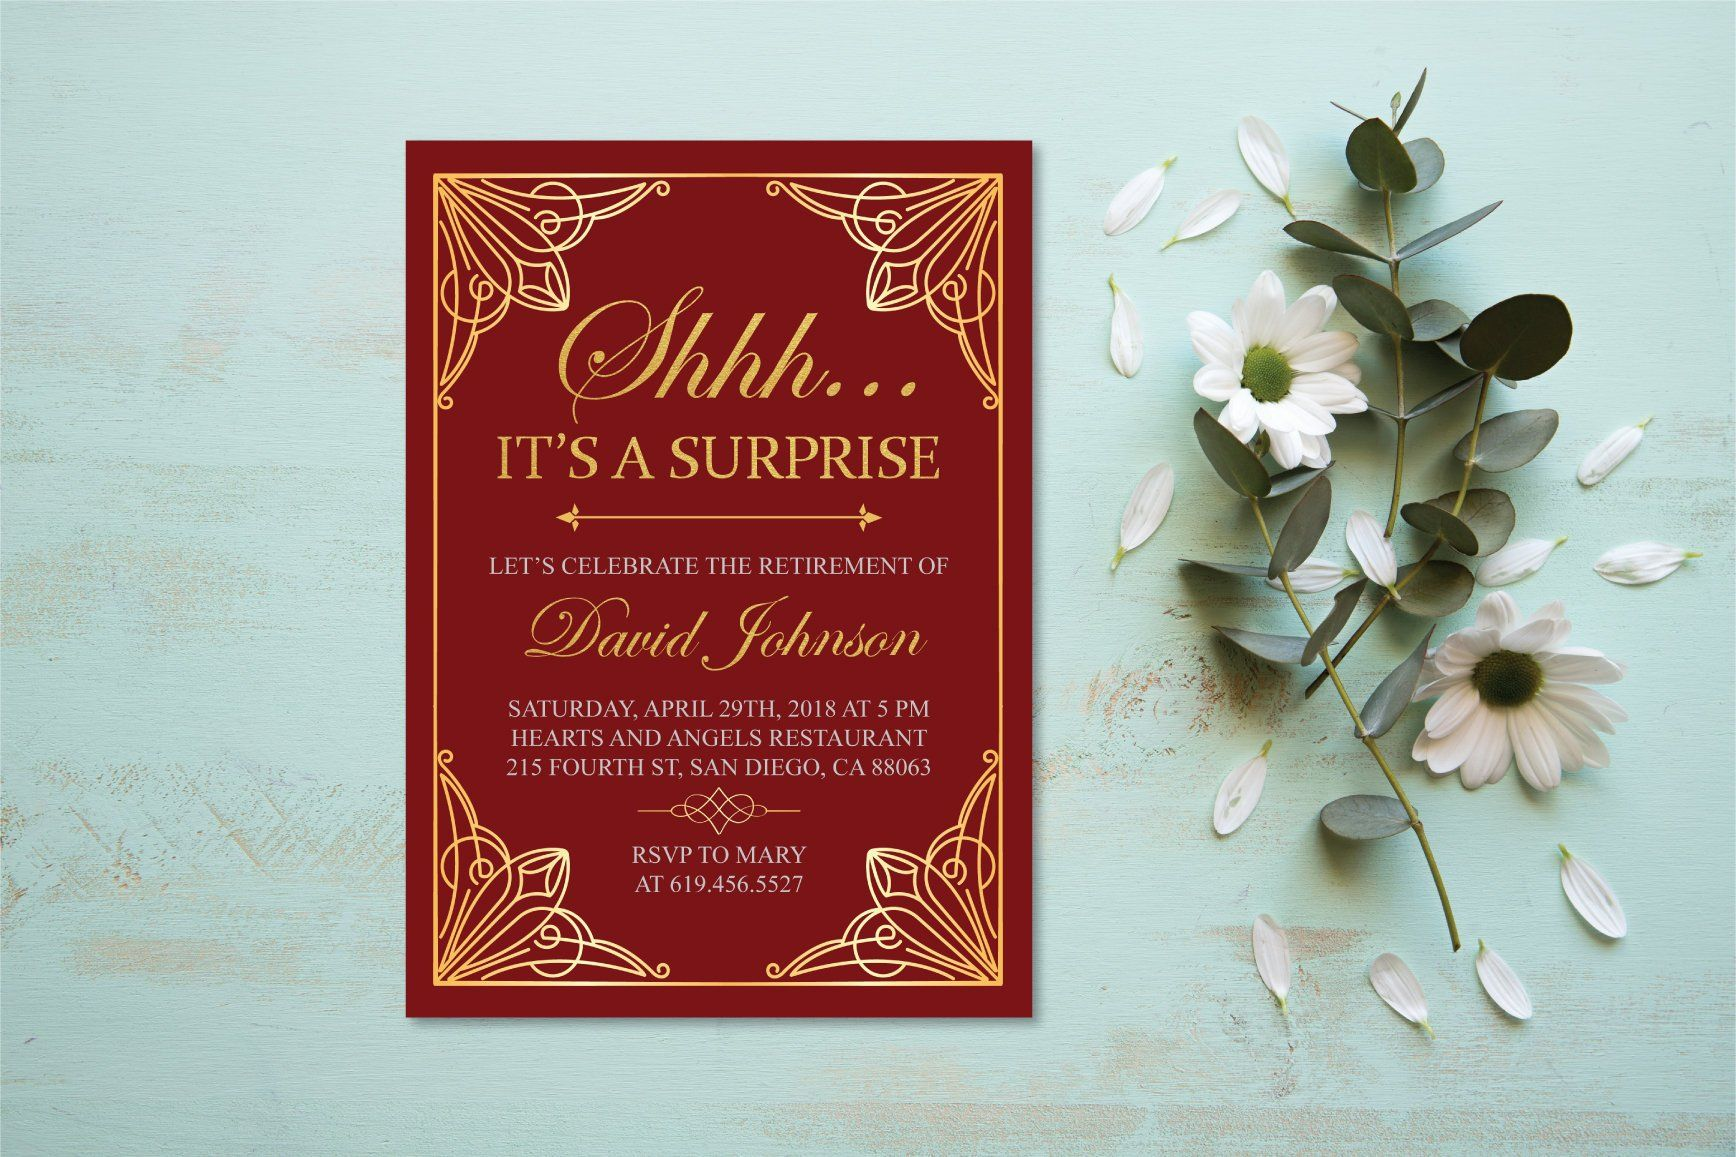 shhh it s a surprise retirement invitation printable gold burgundy